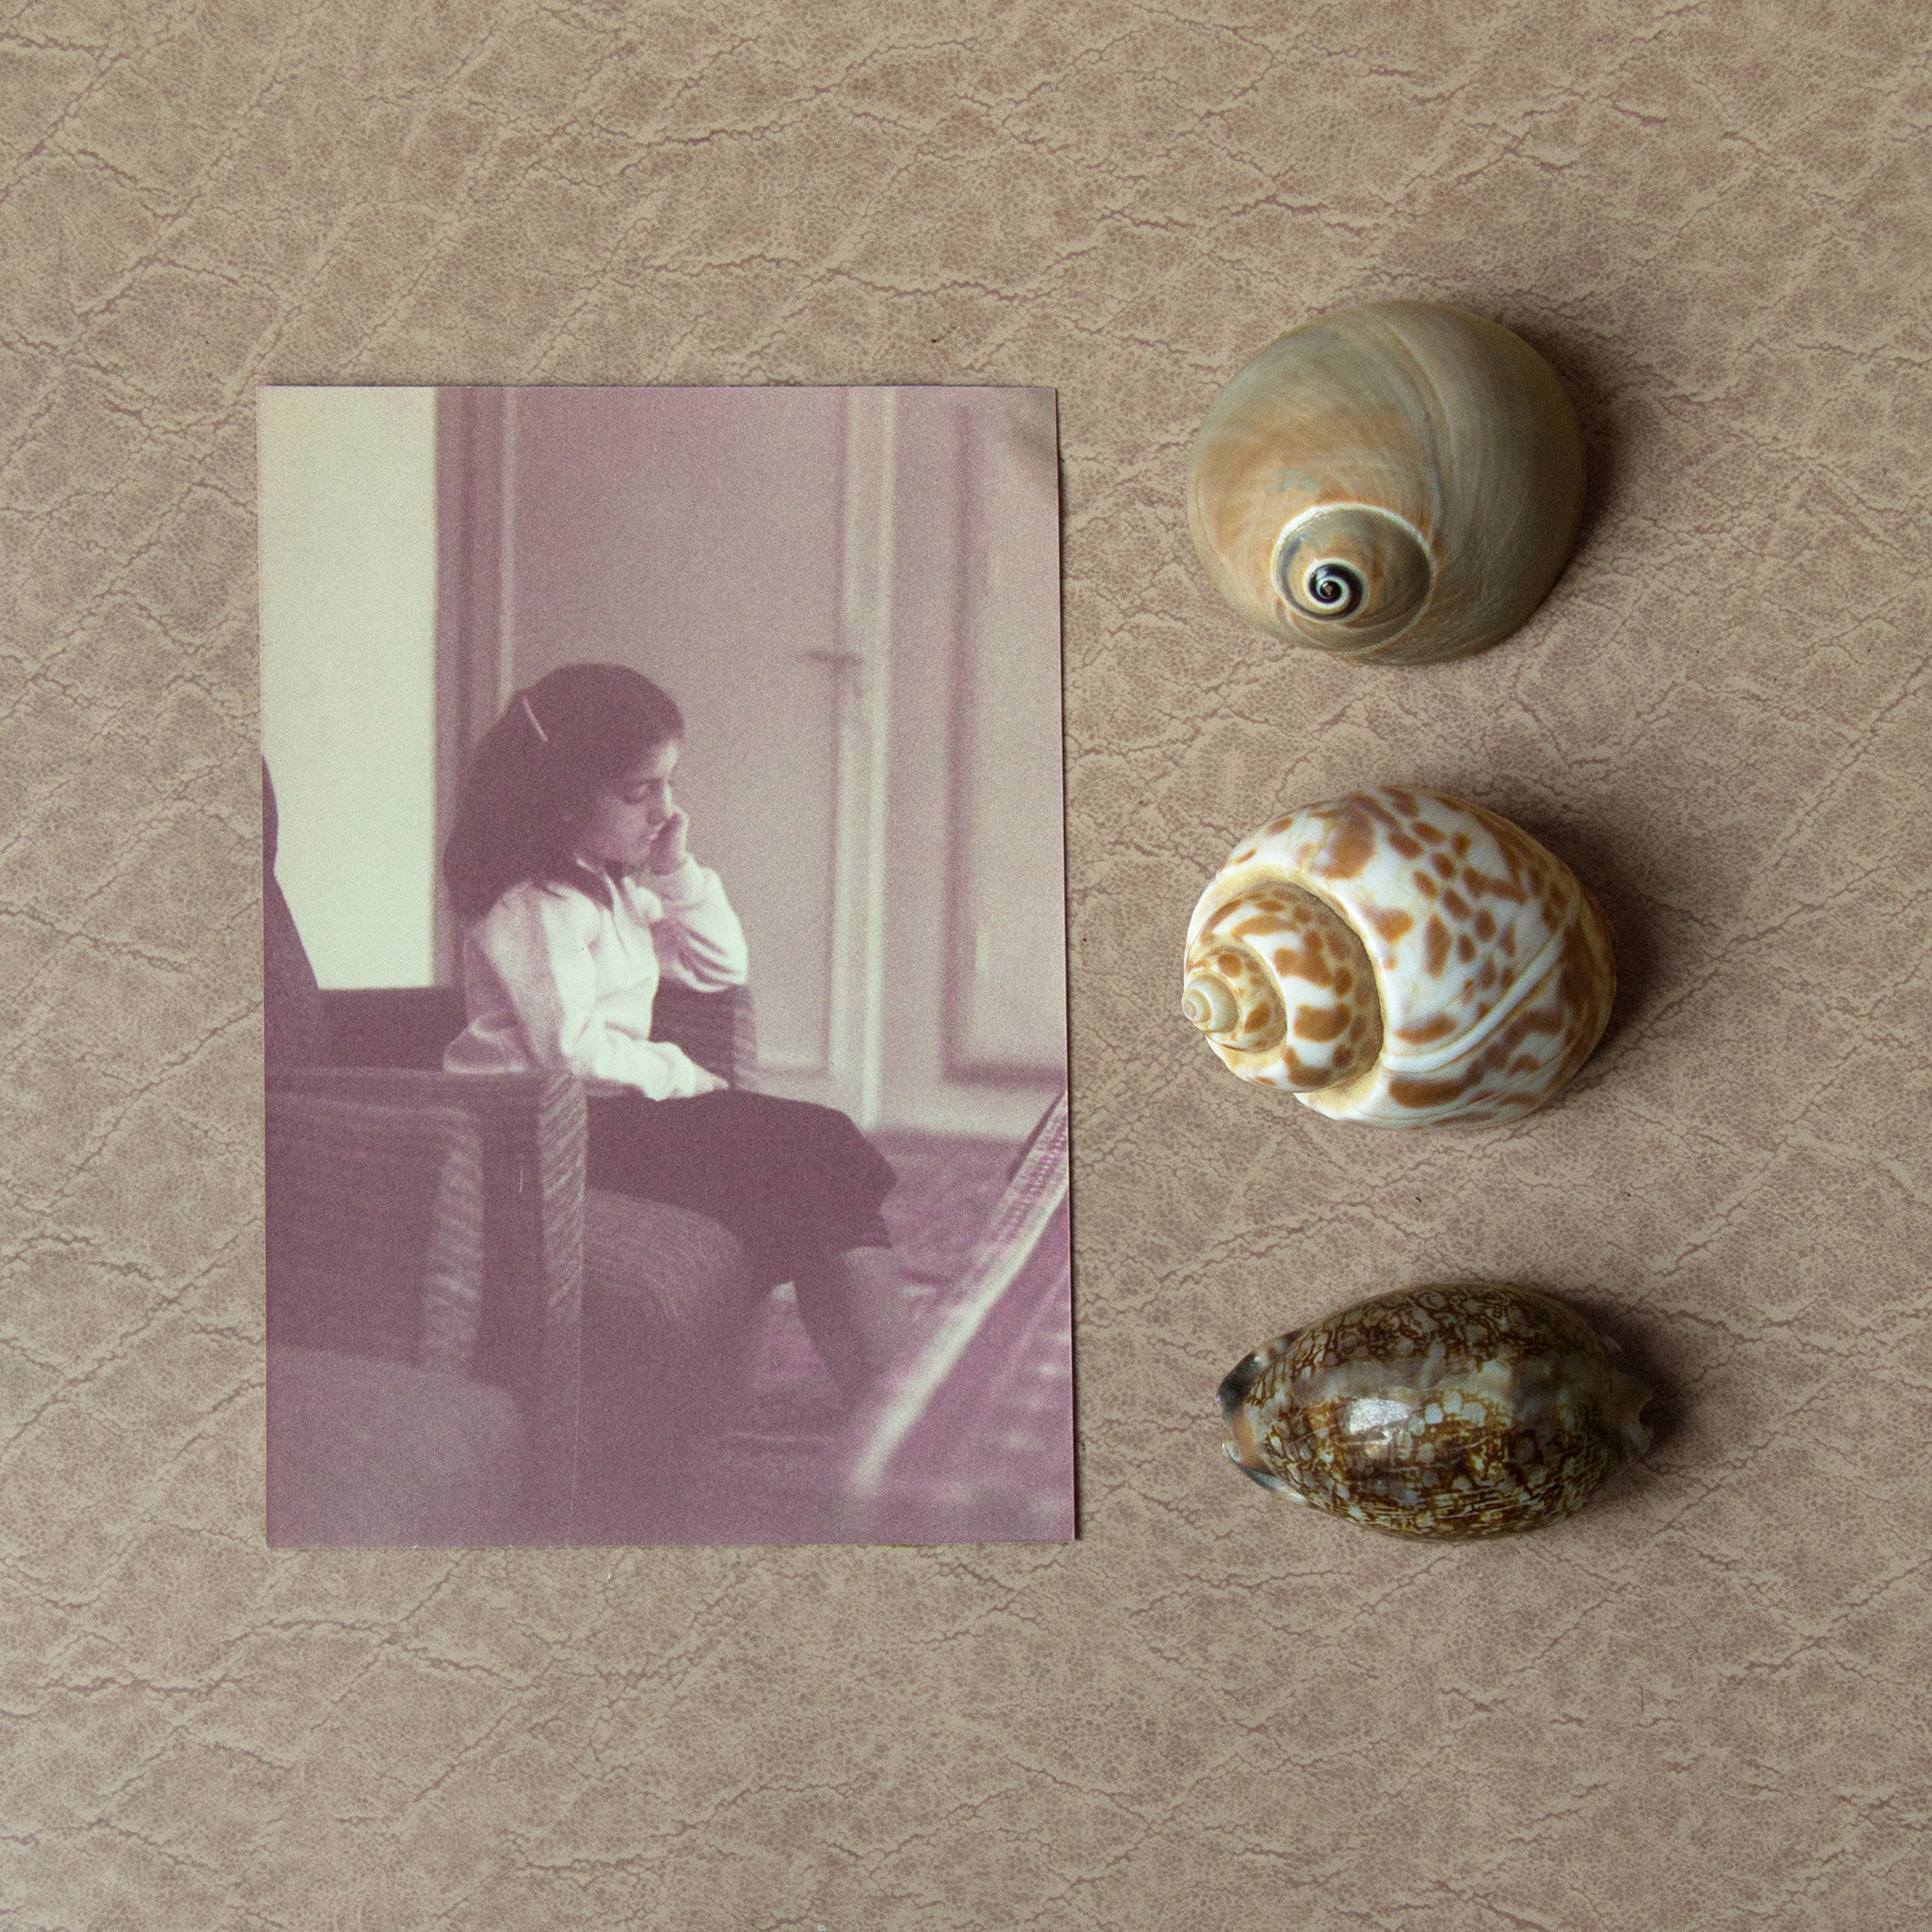 Vintage Image with Shells on the Side